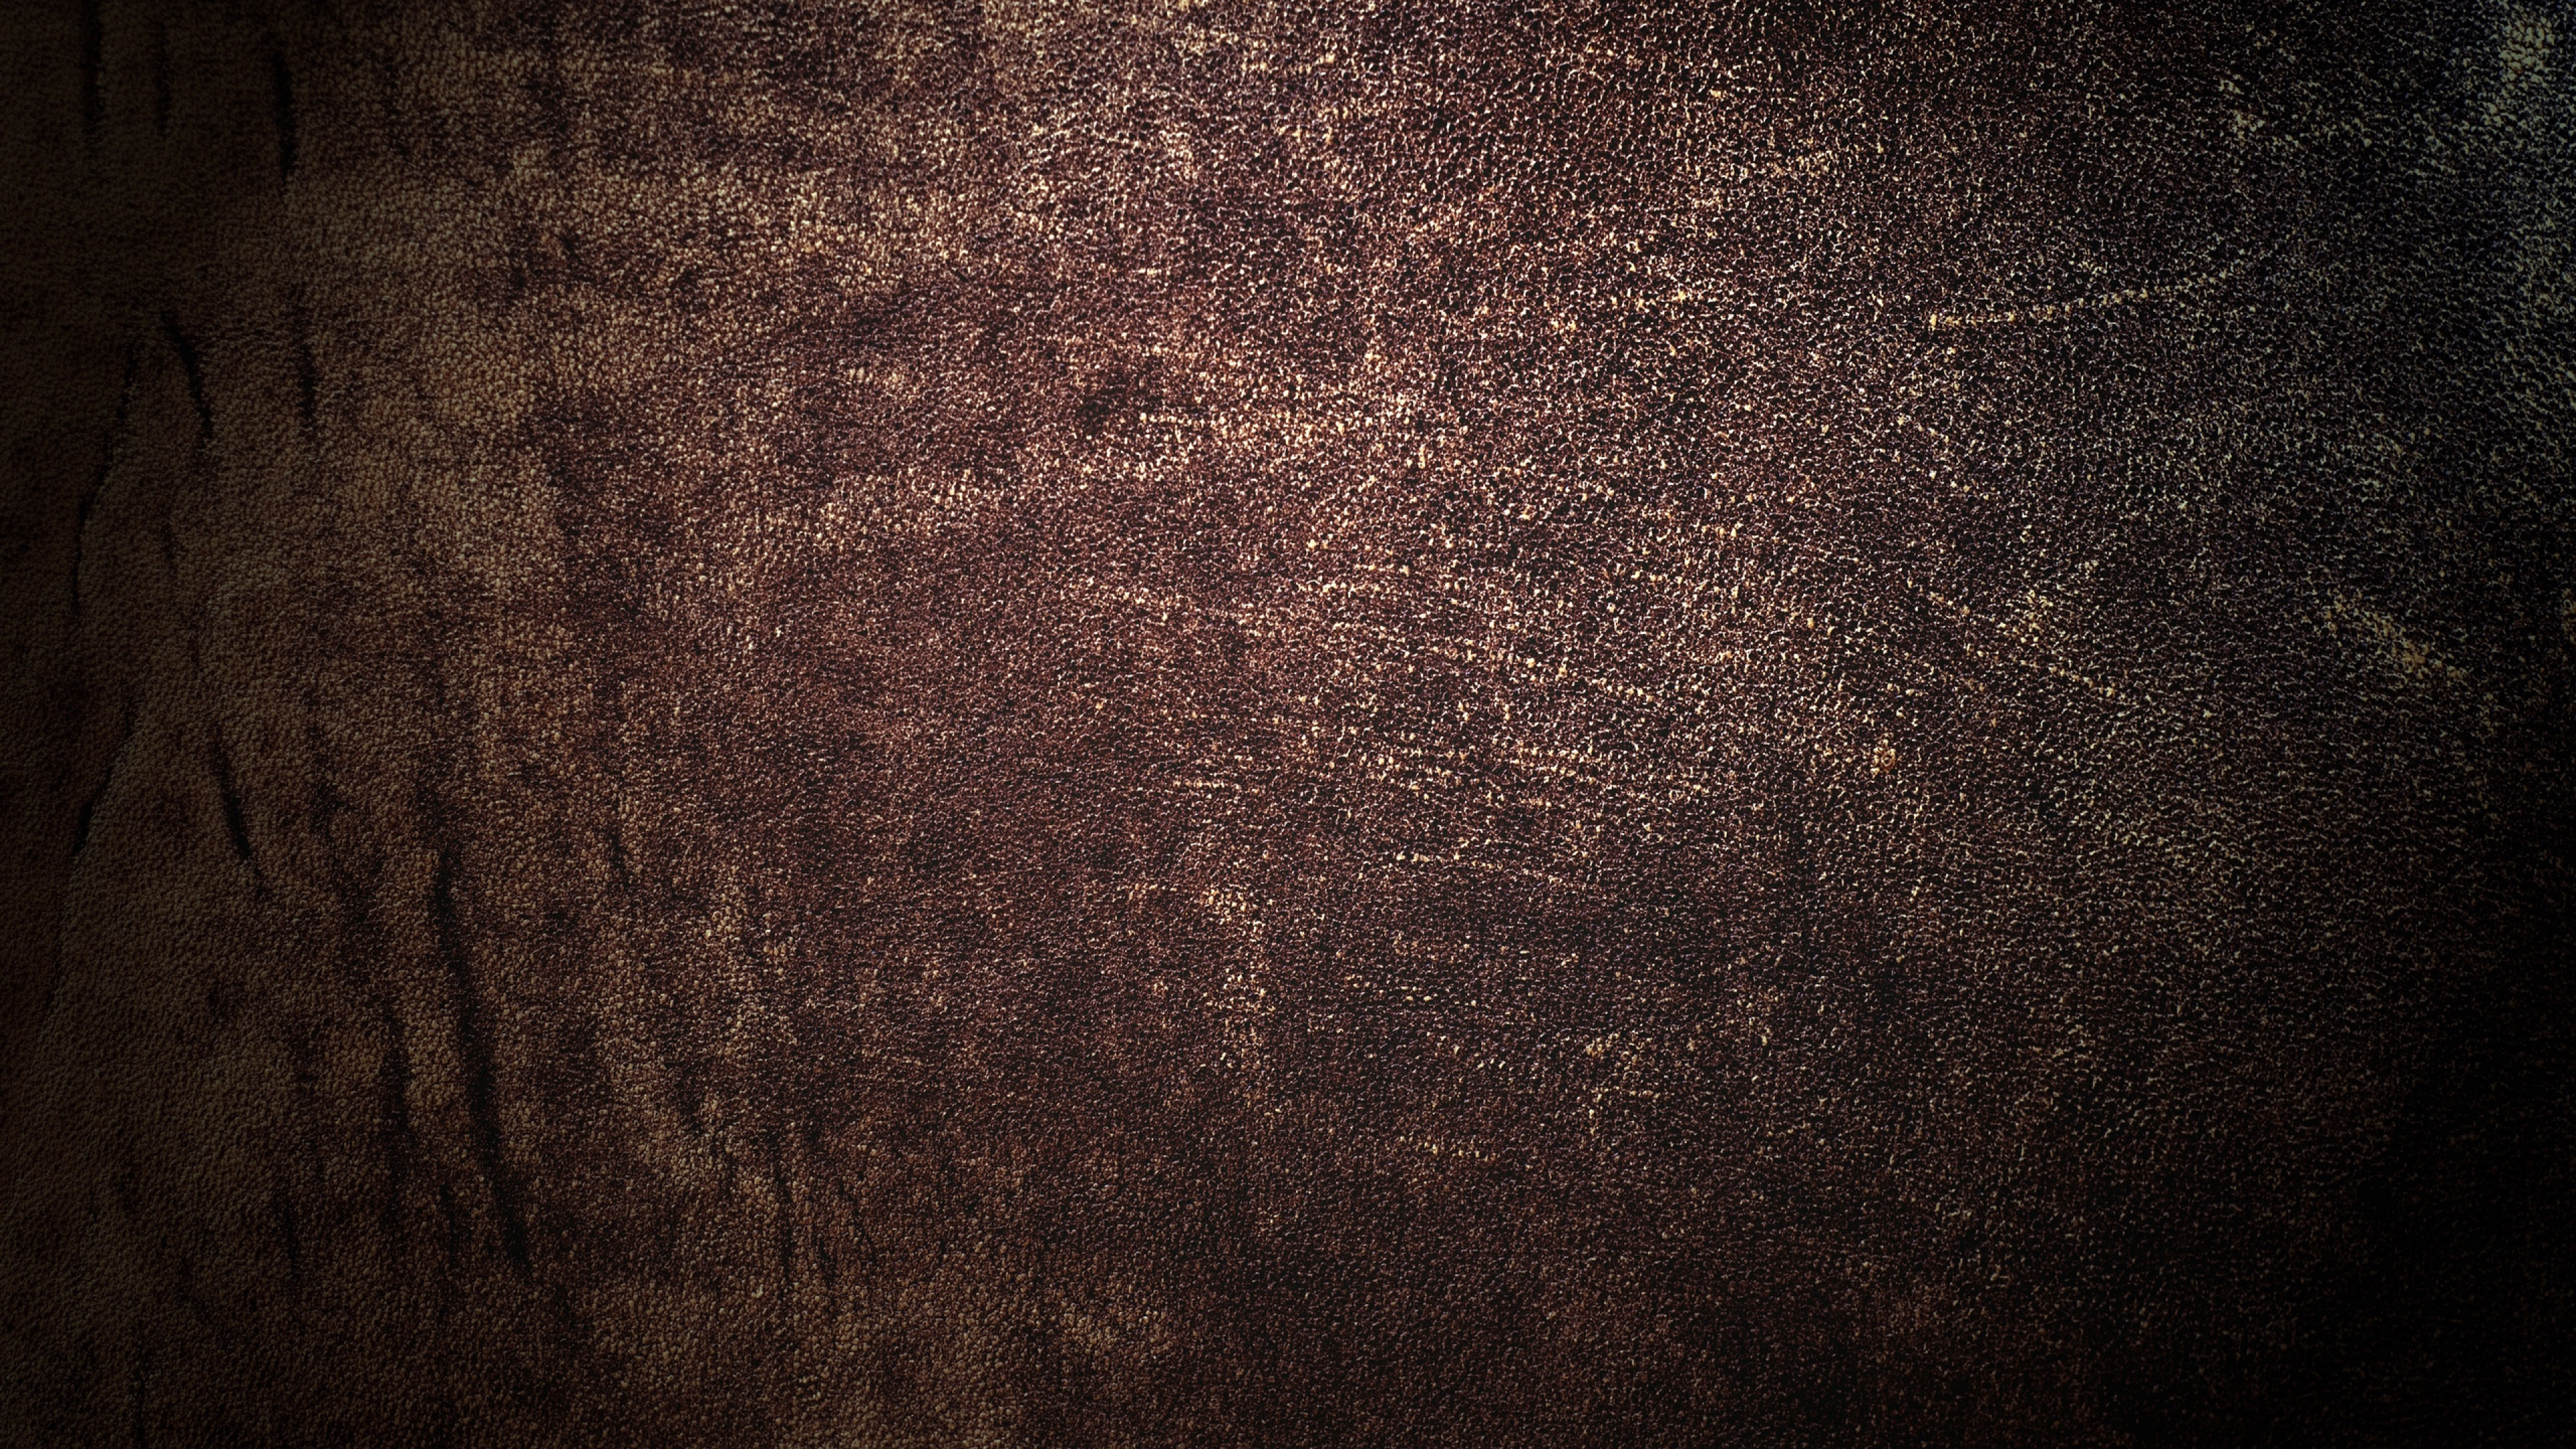 Download Wallpaper 3840x2160 skin texture leather brown 4K Ultra HD 3840x2160